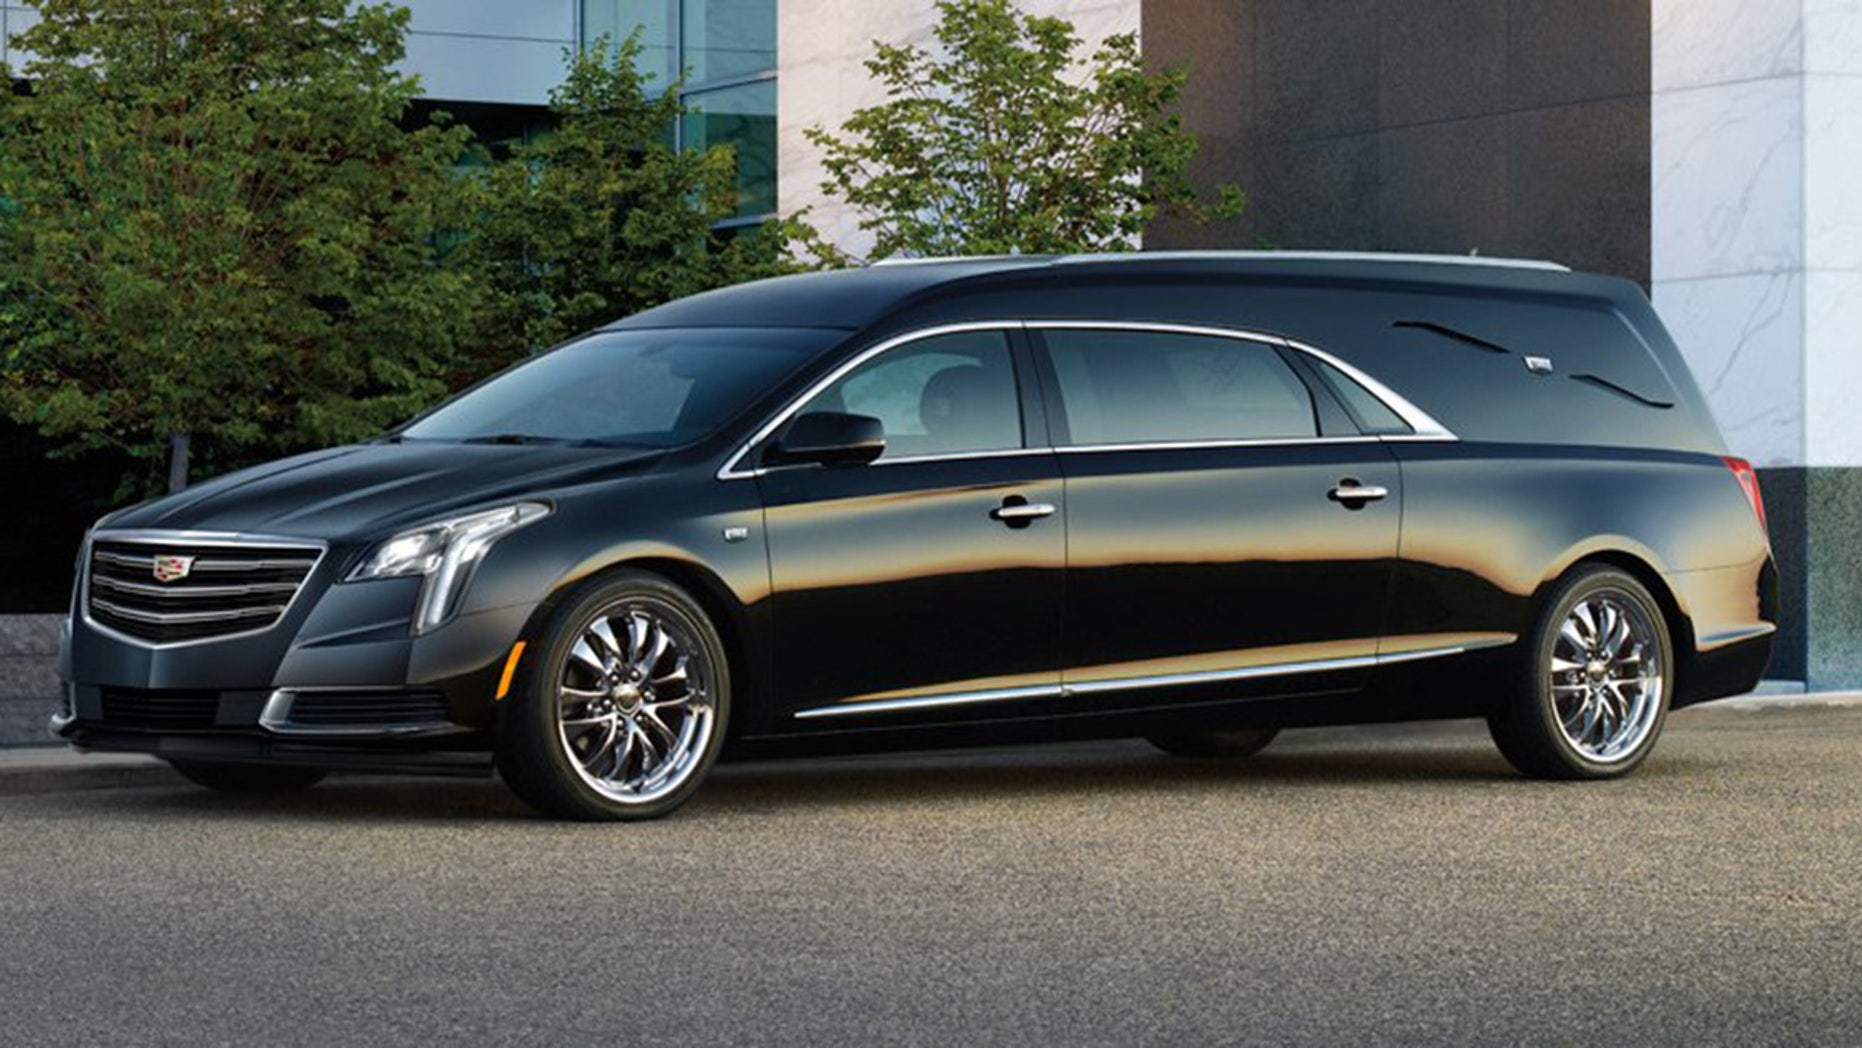 GM Fleet offers a version of the Cadillac XTS prepped for conversion into a hearse.